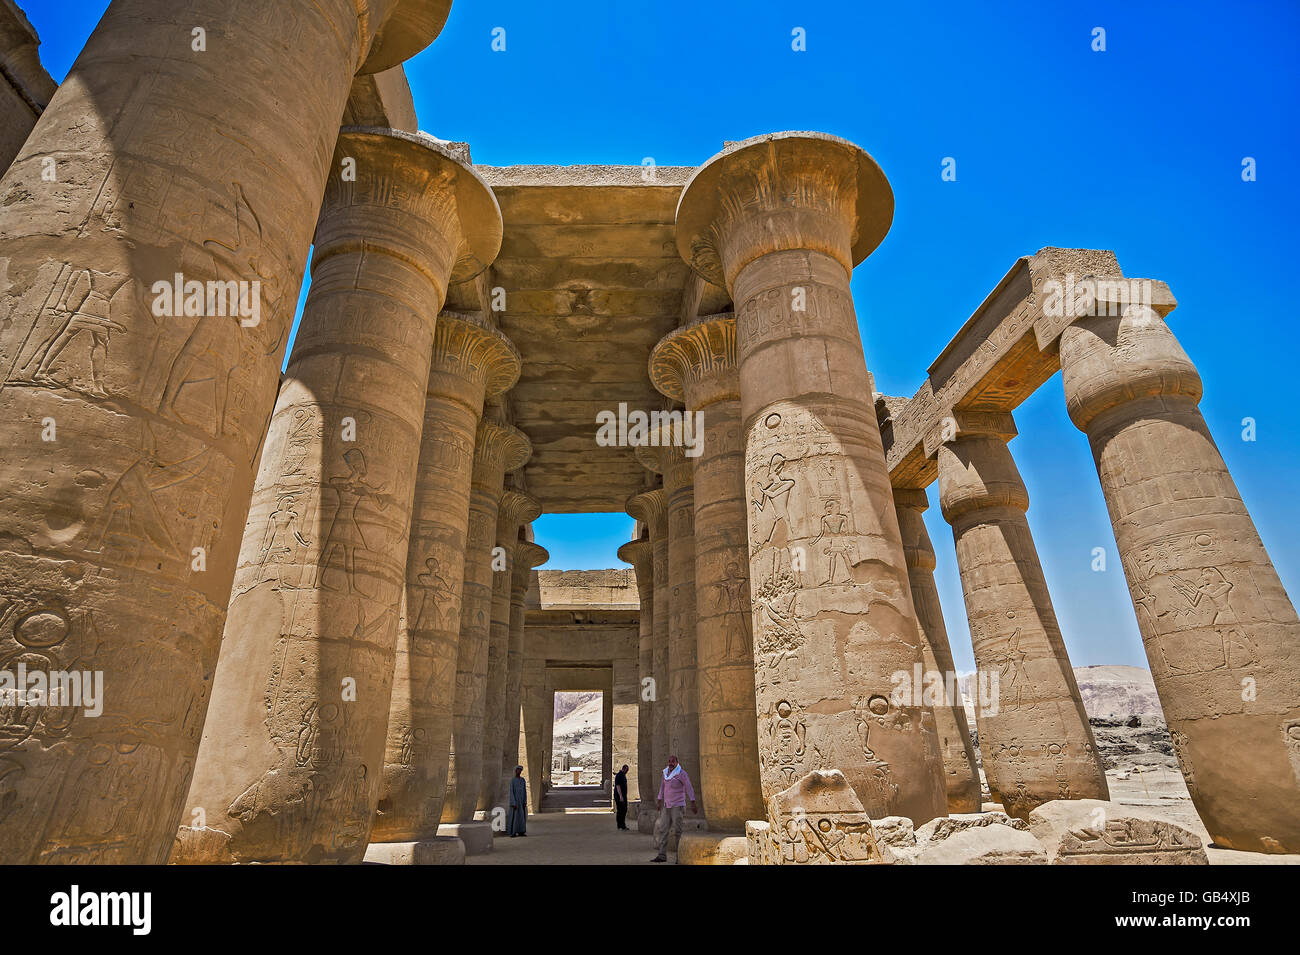 Arcade, Ramesseum, temple de Louxor, Egypte Photo Stock